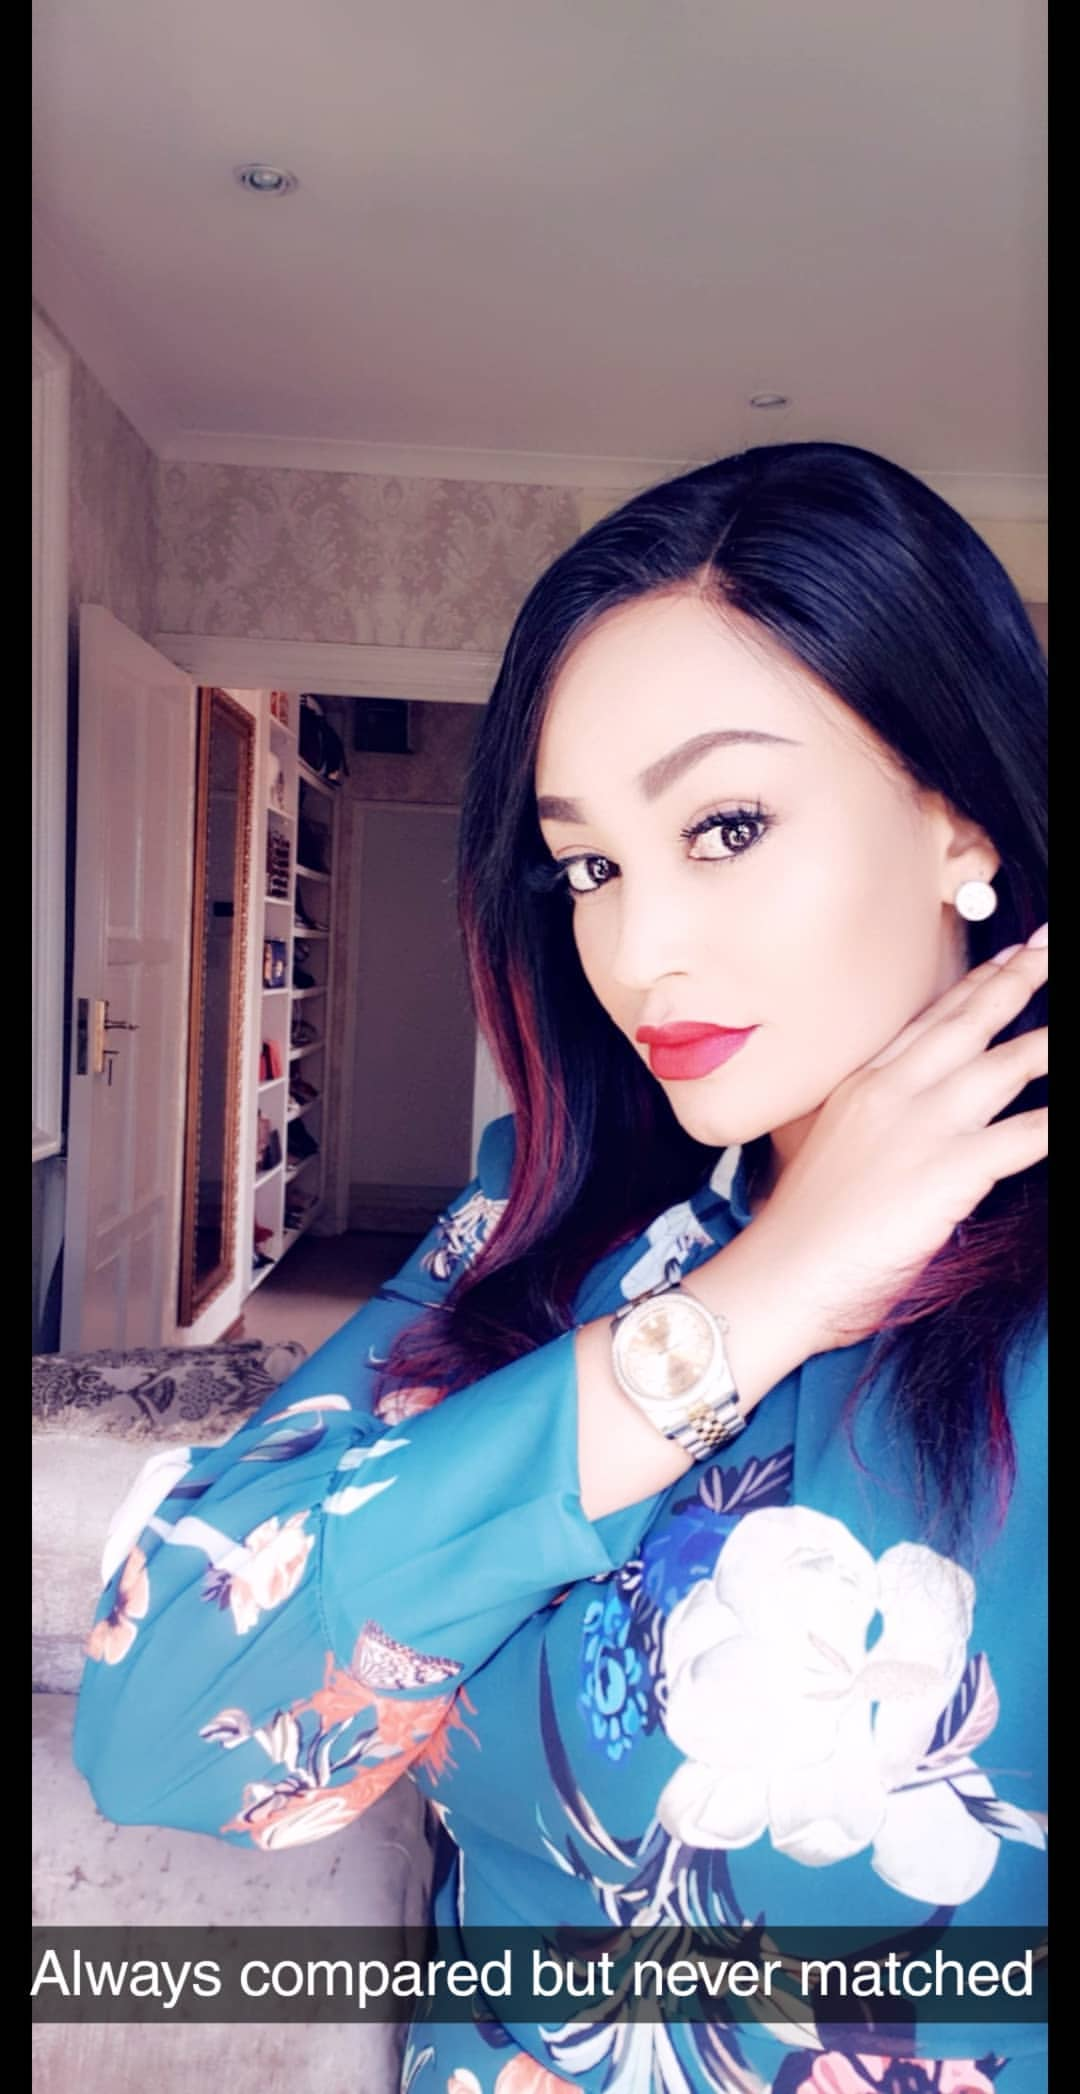 52120328 123567918760578 7502955468047526496 n - 'Always compared but never matched!' Zari fires shots at critics